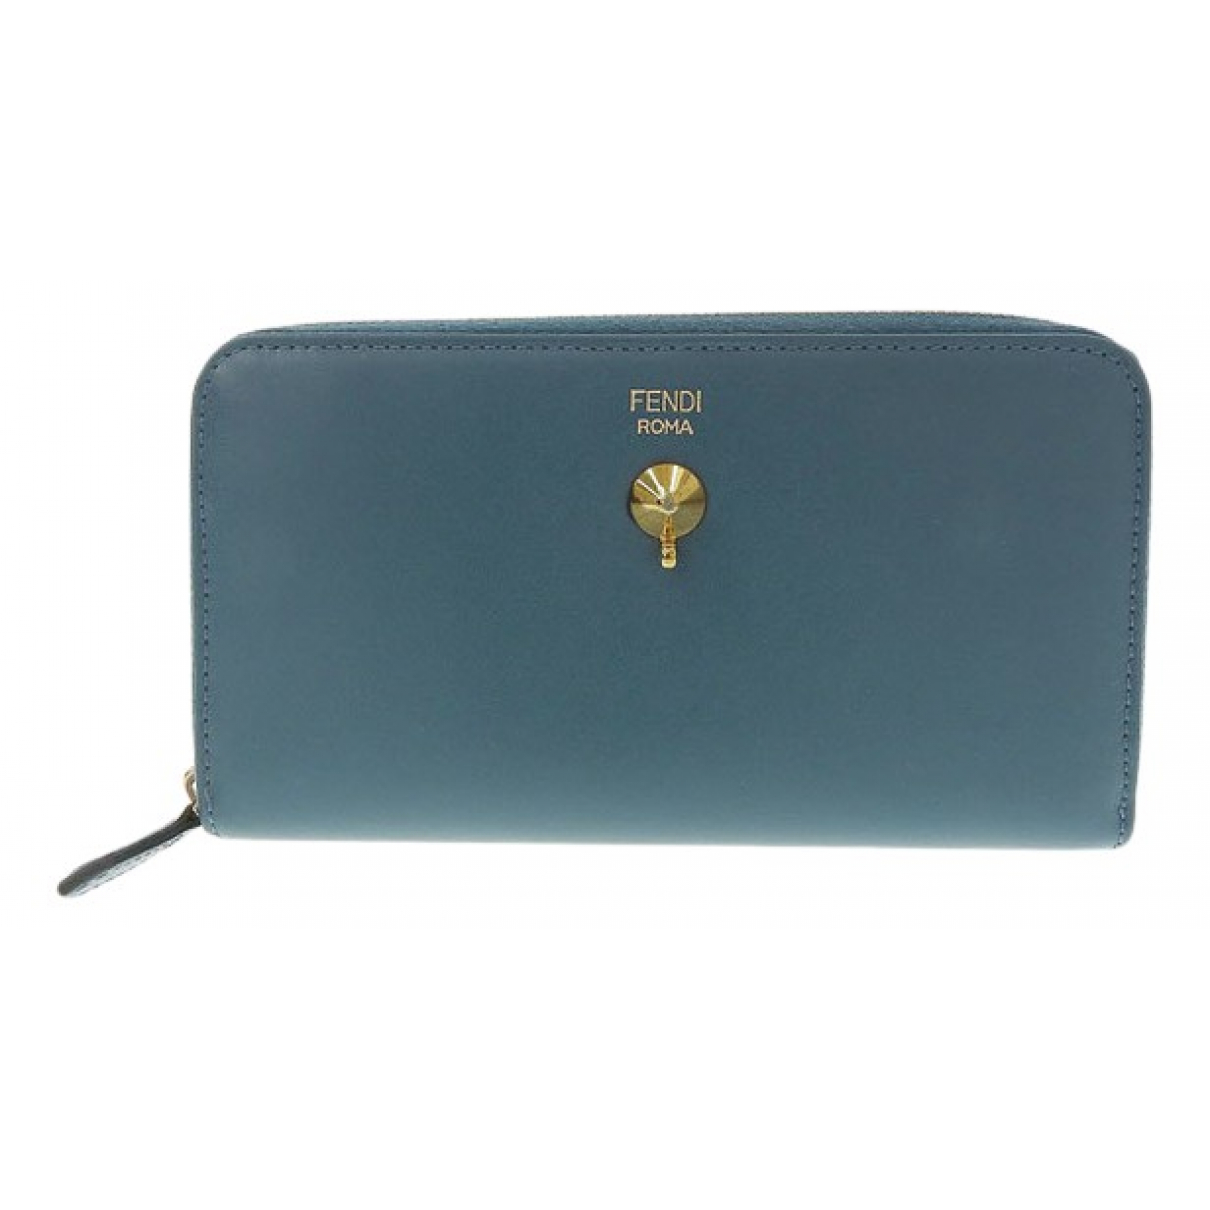 Fendi N Blue Leather wallet for Women N